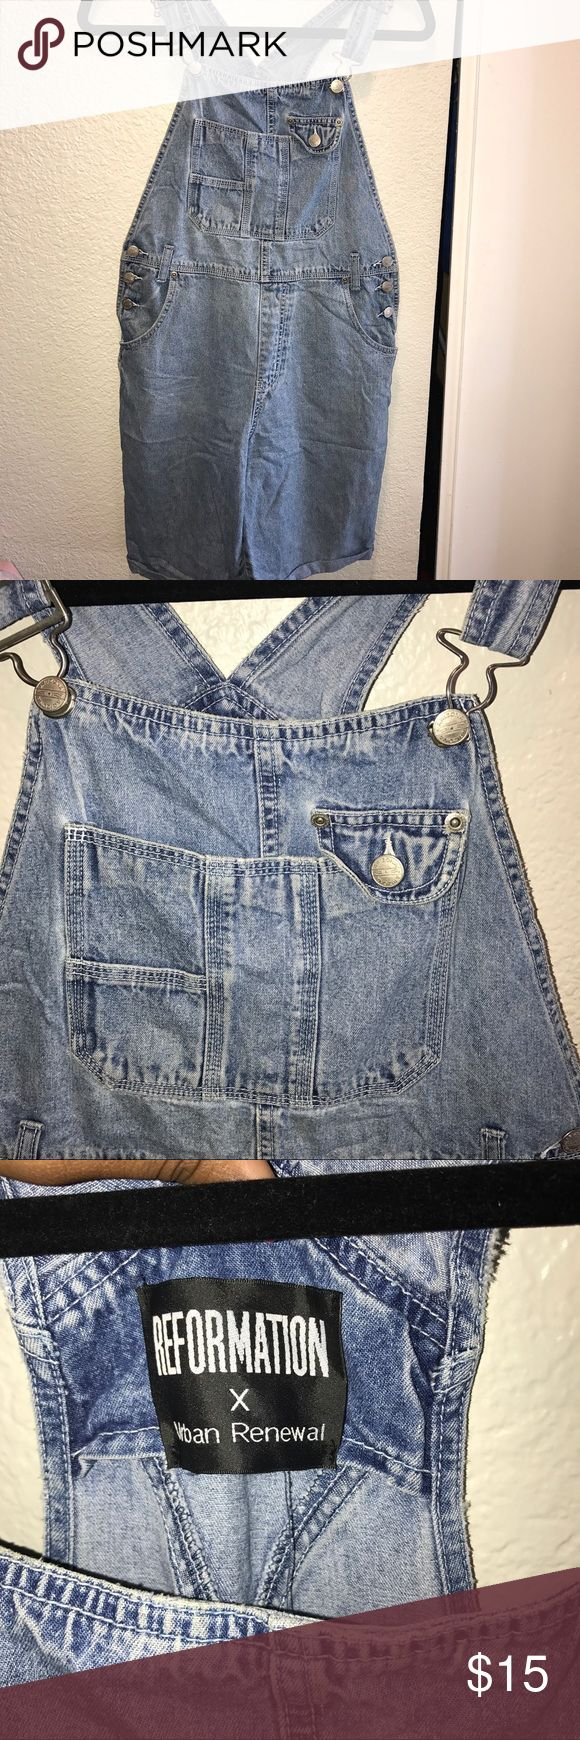 Overalls Short overalls From the Urban outfitters outlet in La .. Leather accent pockets (they are not real pockets)  Super Cute 😍 No stretch  ✖️ If you love denim ... these are for you !  Don't like the price ... make me an offer ! Urban Outfitters Jeans Overalls